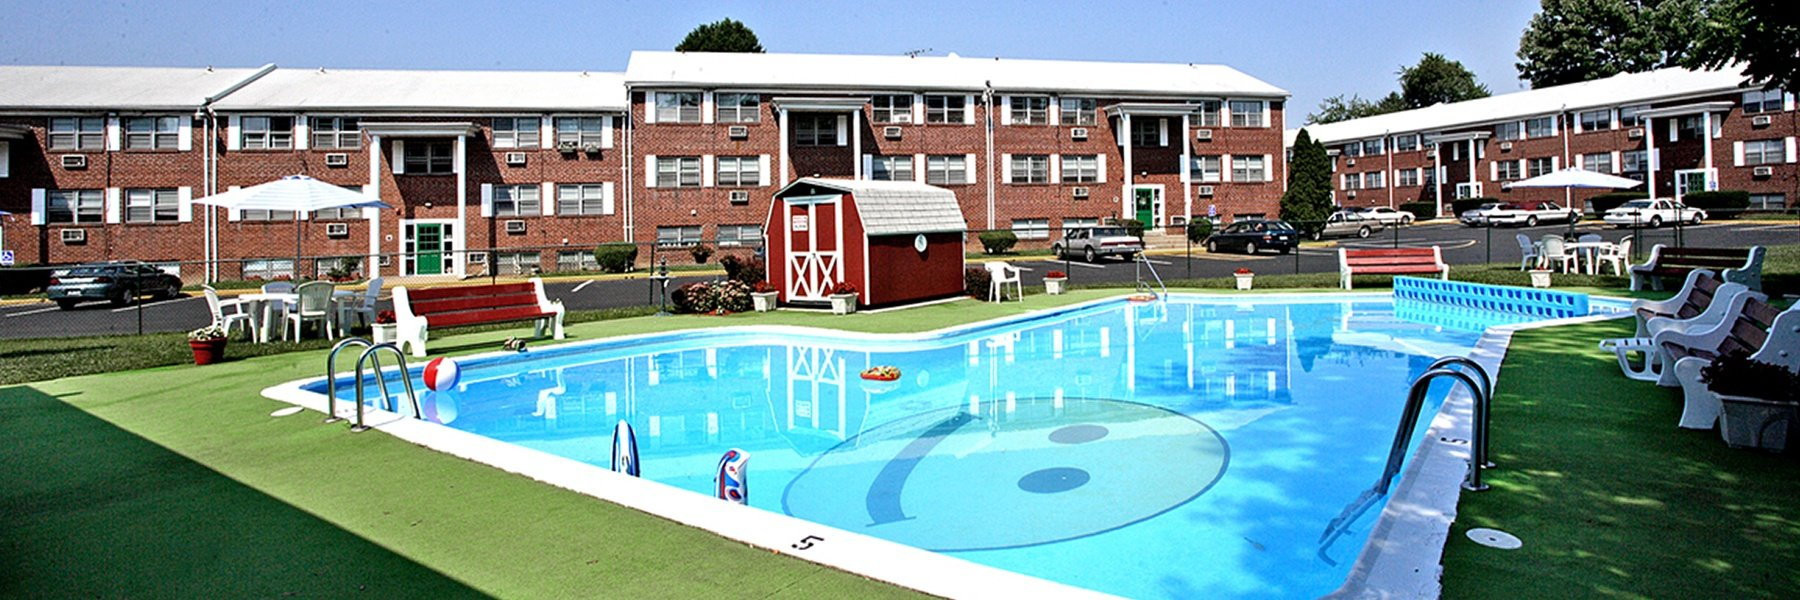 Bellevue Court Apartments For Rent in Penndel, PA Swimming Pool